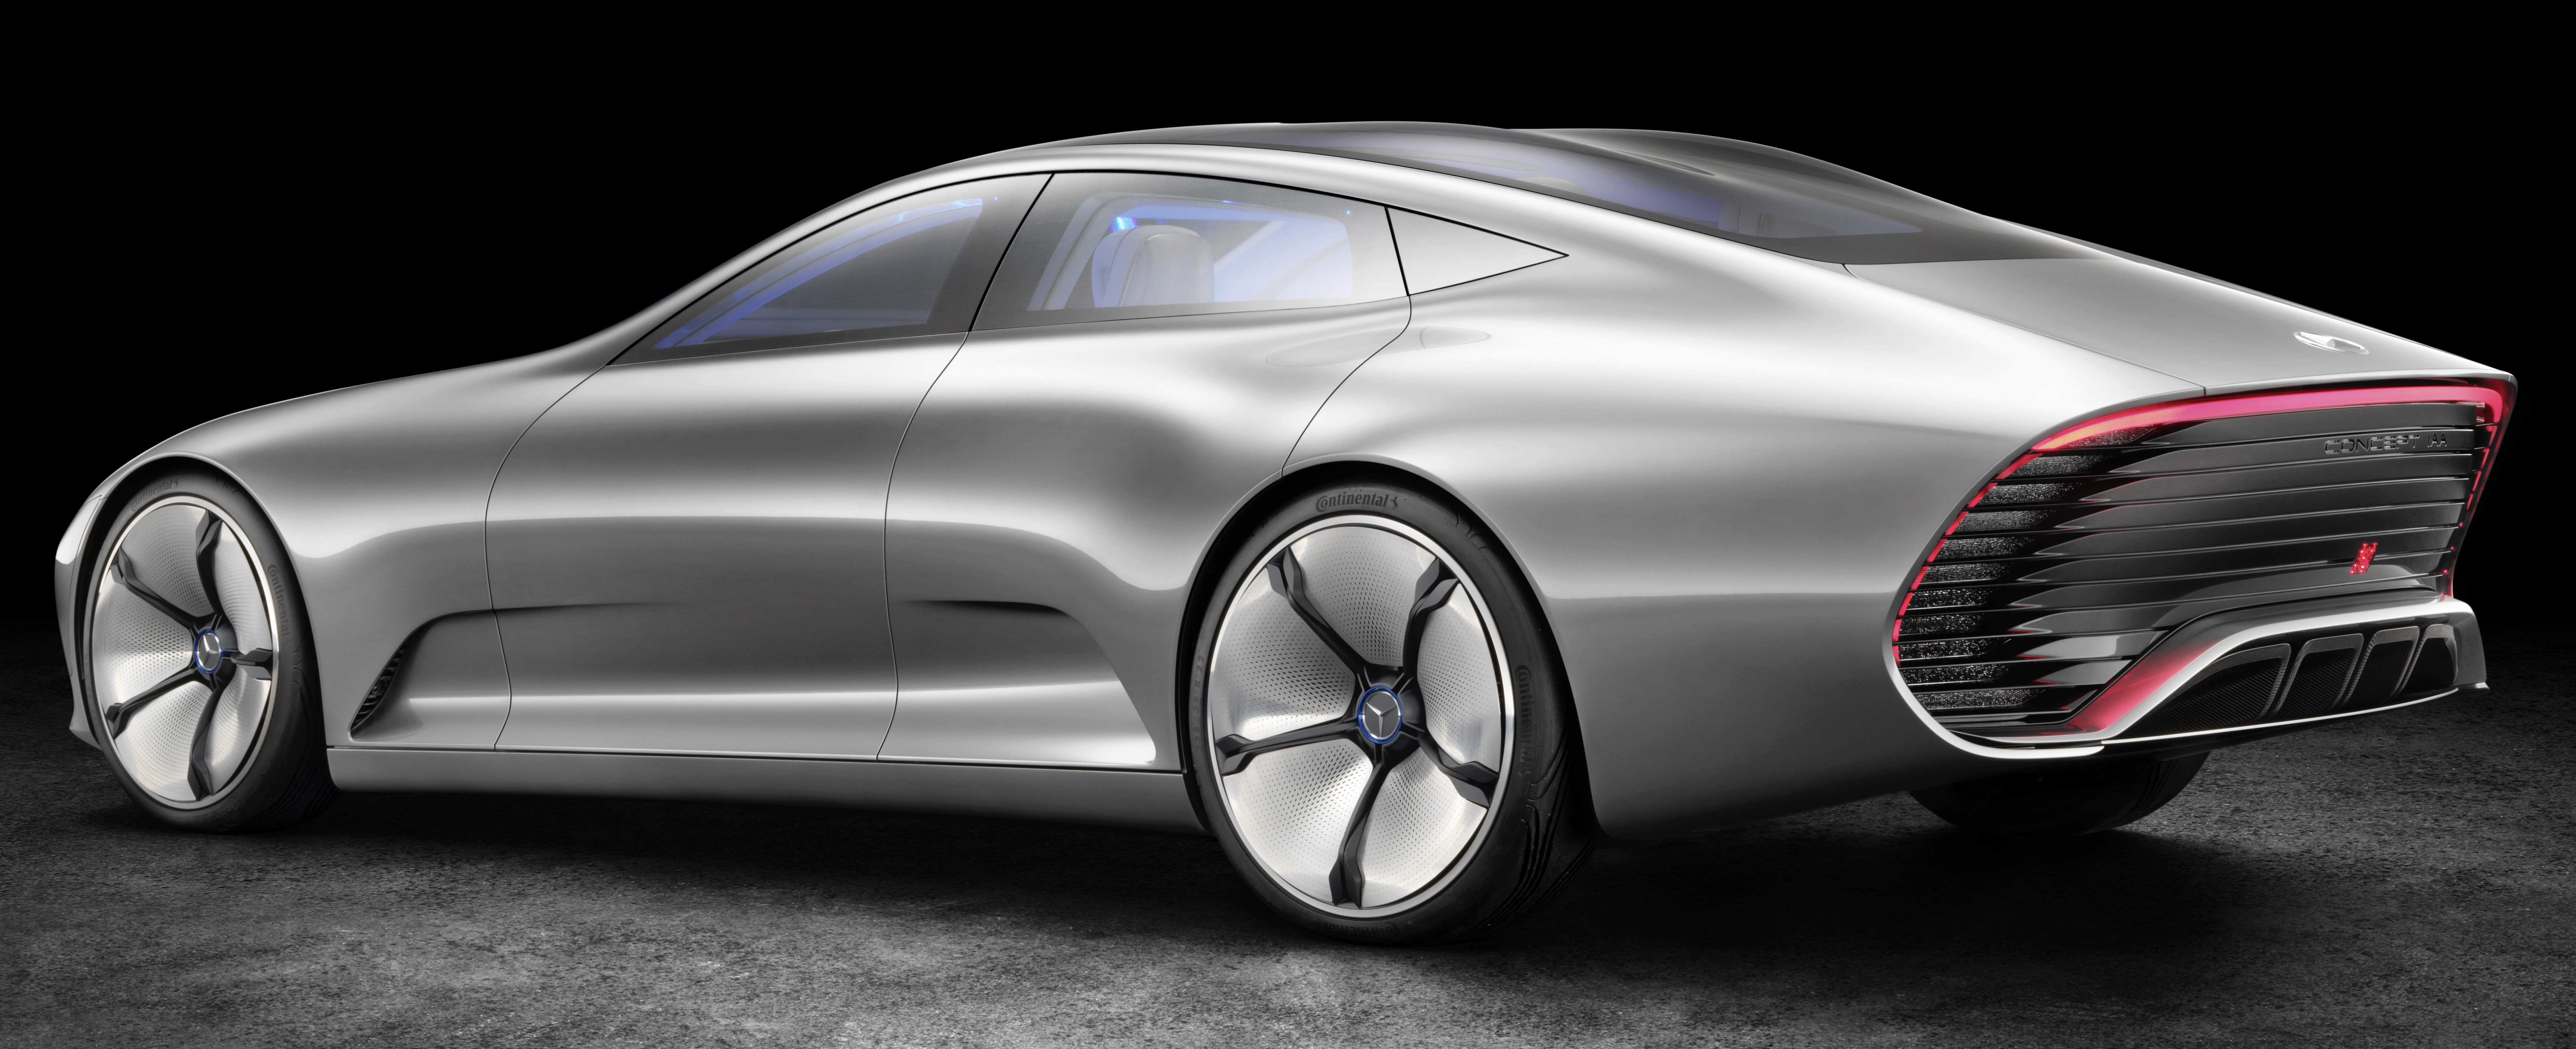 Mercedes benz working on new platform for electric for New electric mercedes benz